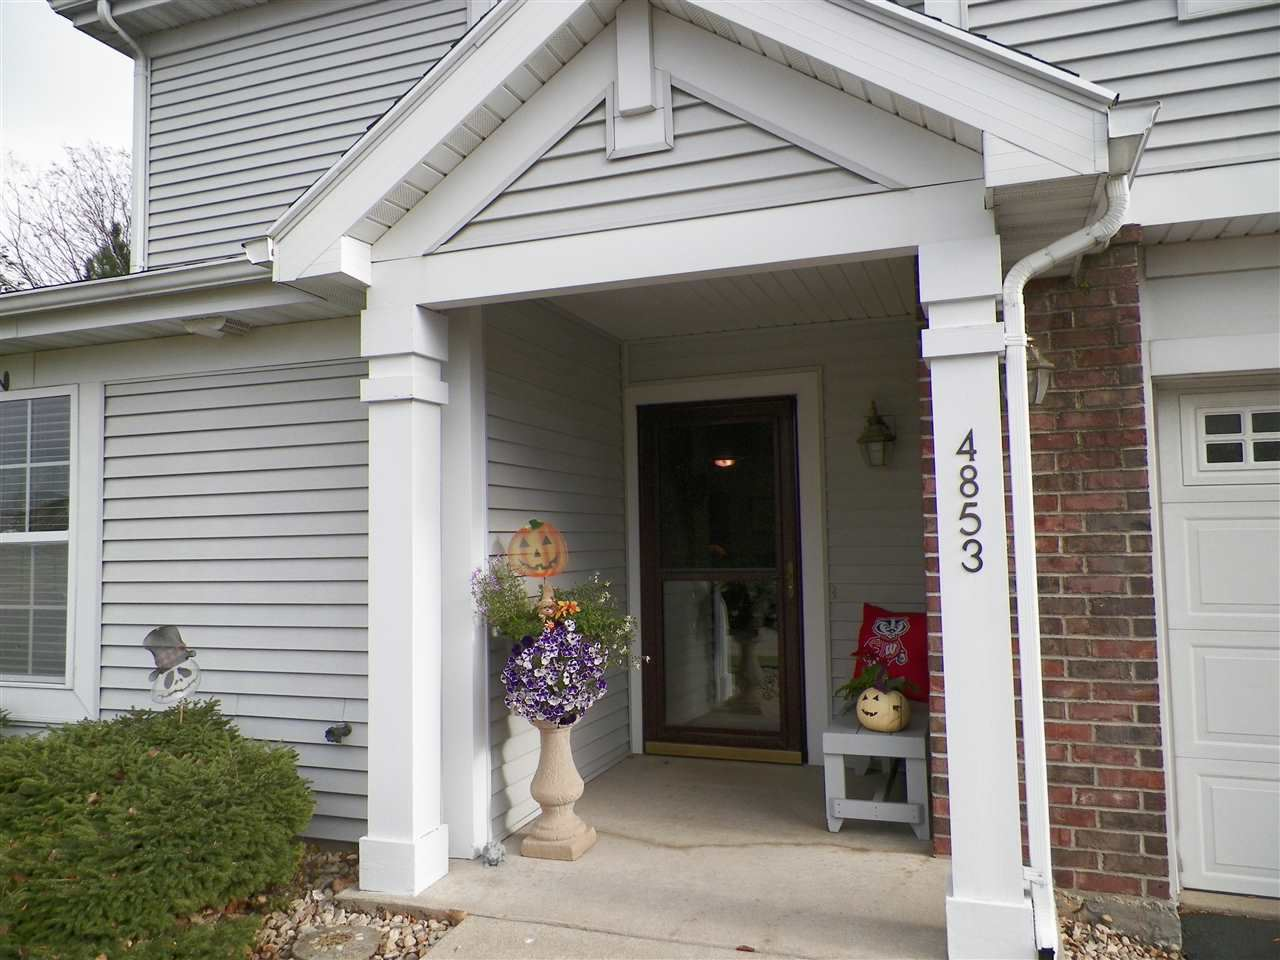 4853 Poplar Creek Dr, Madison, WI 53718 - #: 1896463